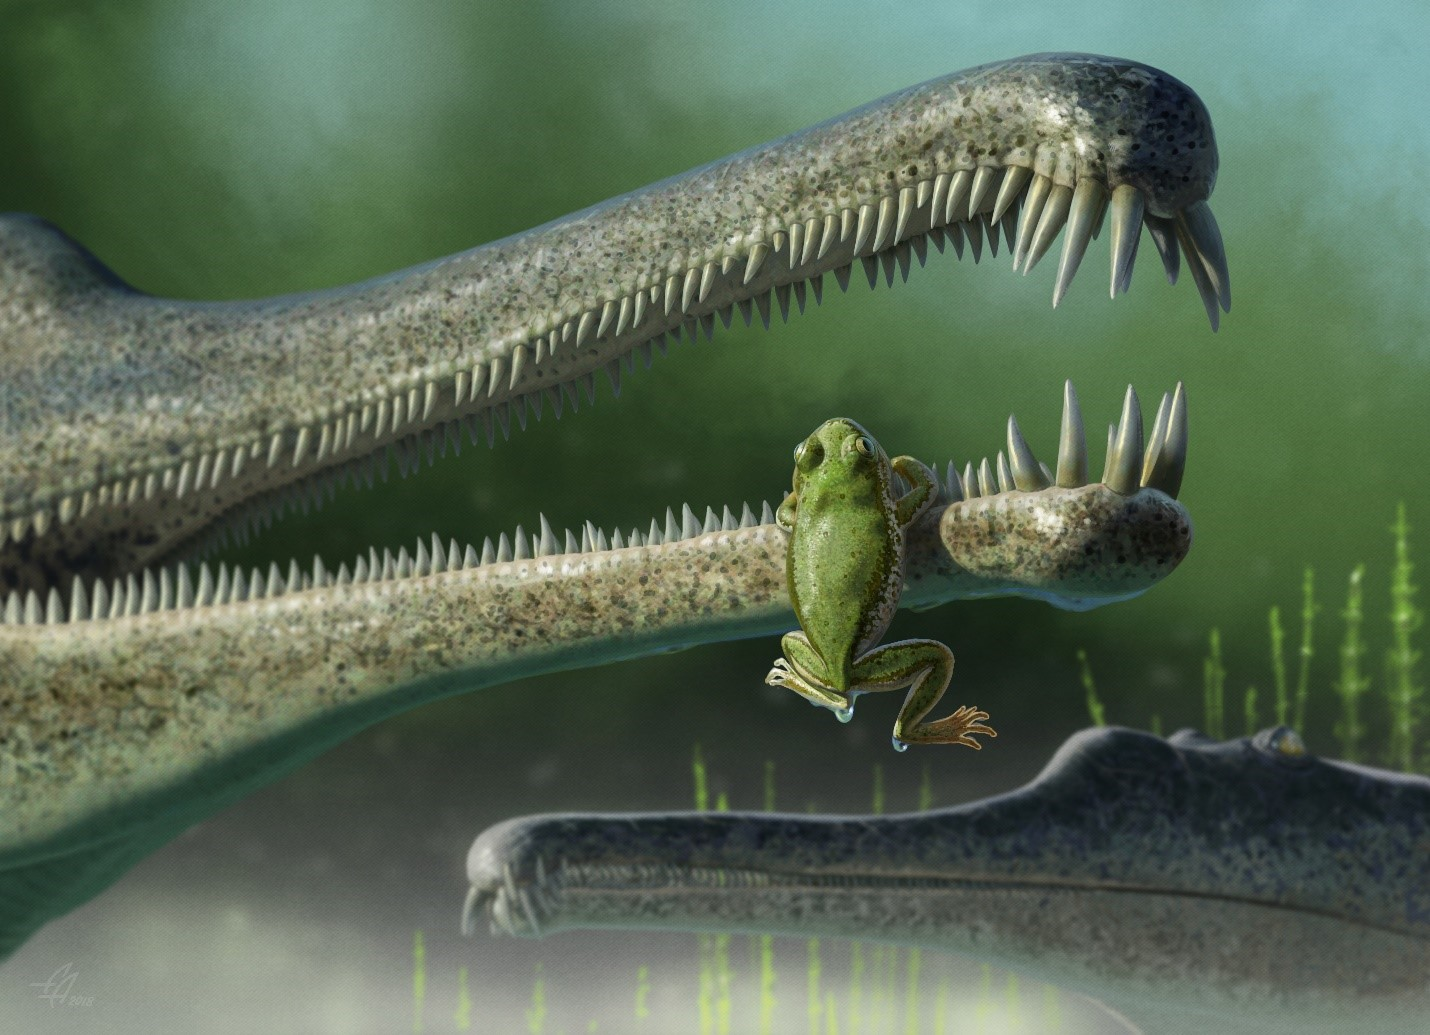 A Triassic frog clings to the snout of a phytosaur